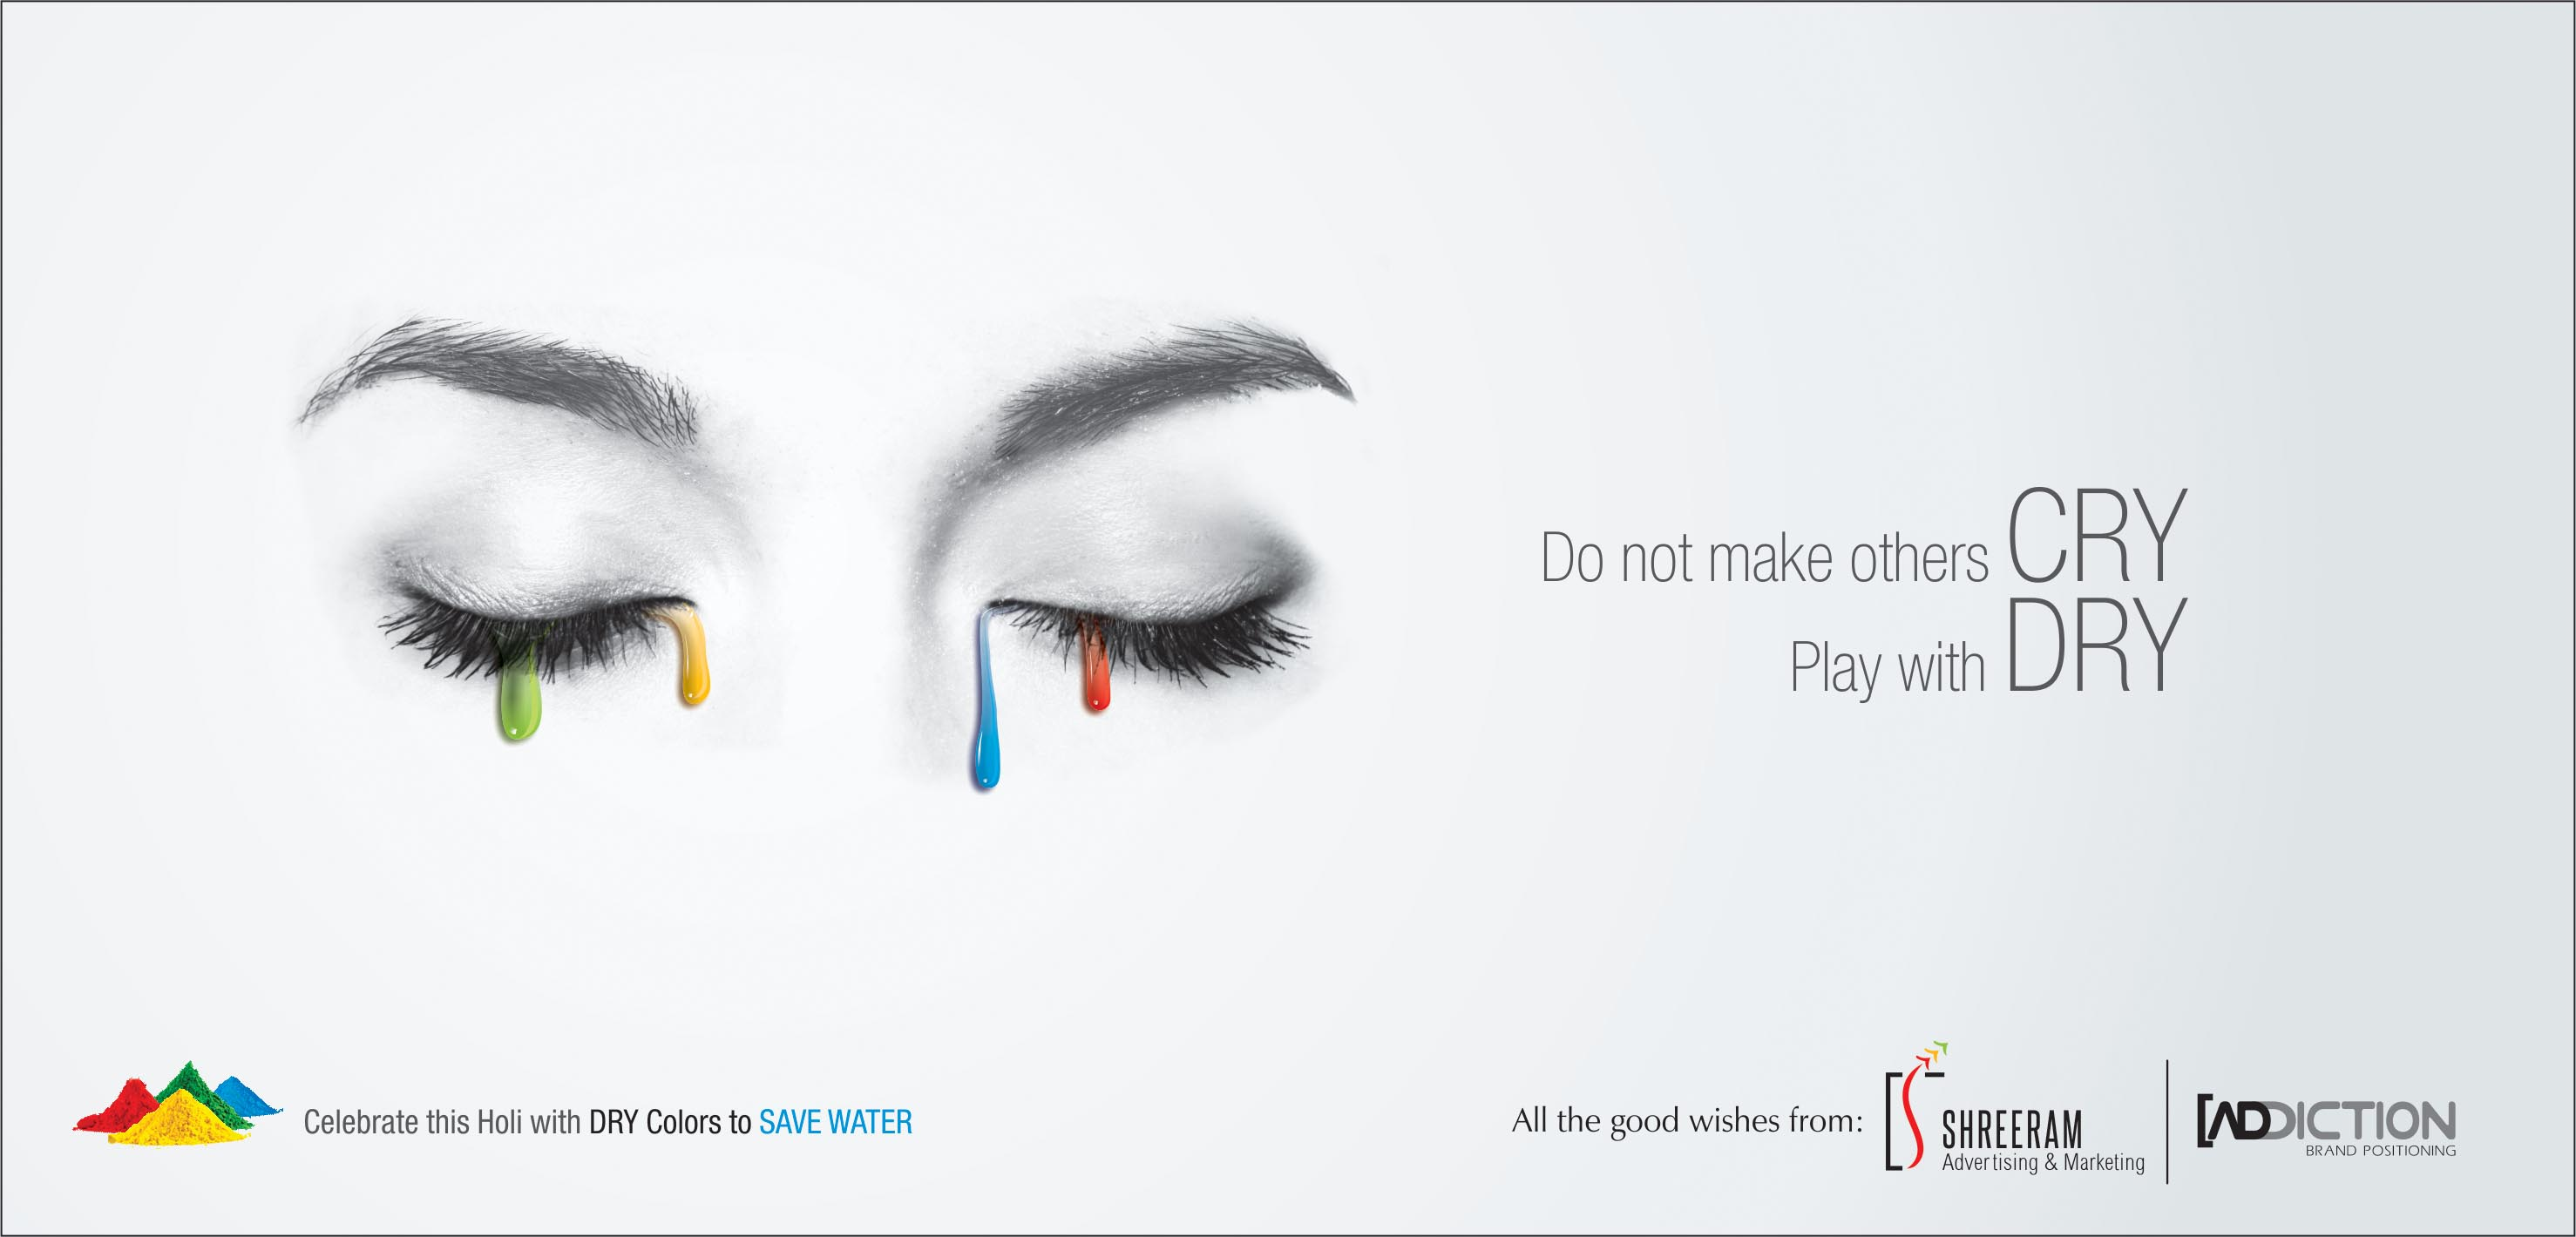 Creative Advertising With Marketing